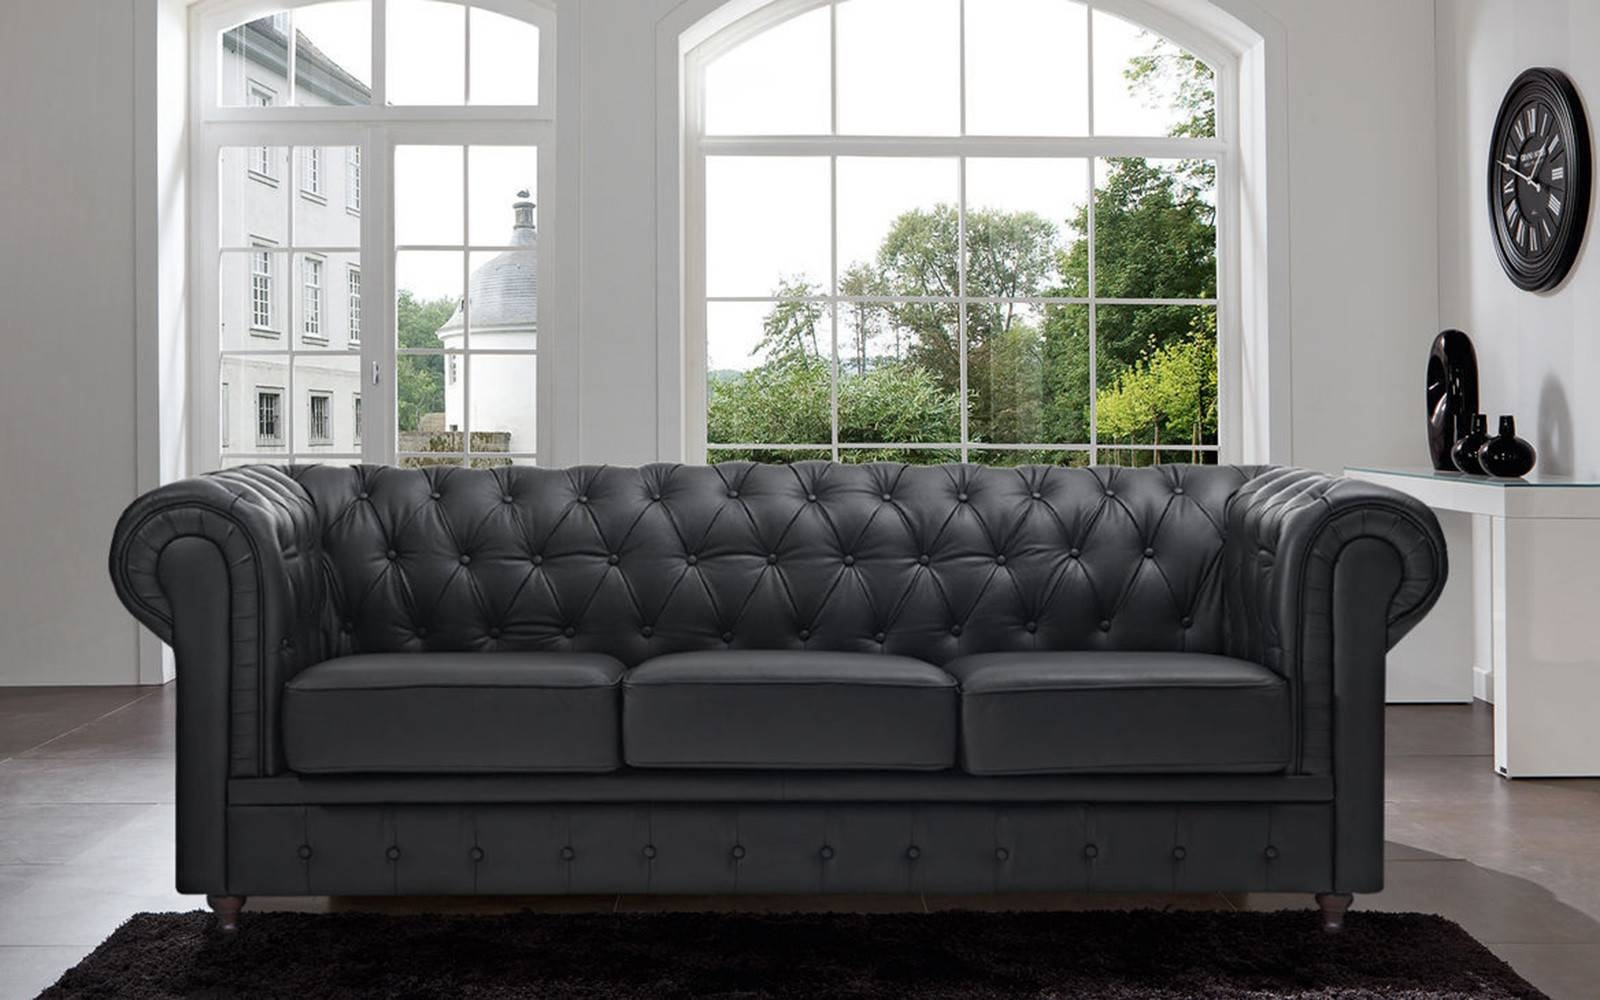 Classic Scroll Arm Tufted Bonded Leather Chesterfield Large Sofa with regard to Chesterfield Black Sofas (Image 11 of 30)